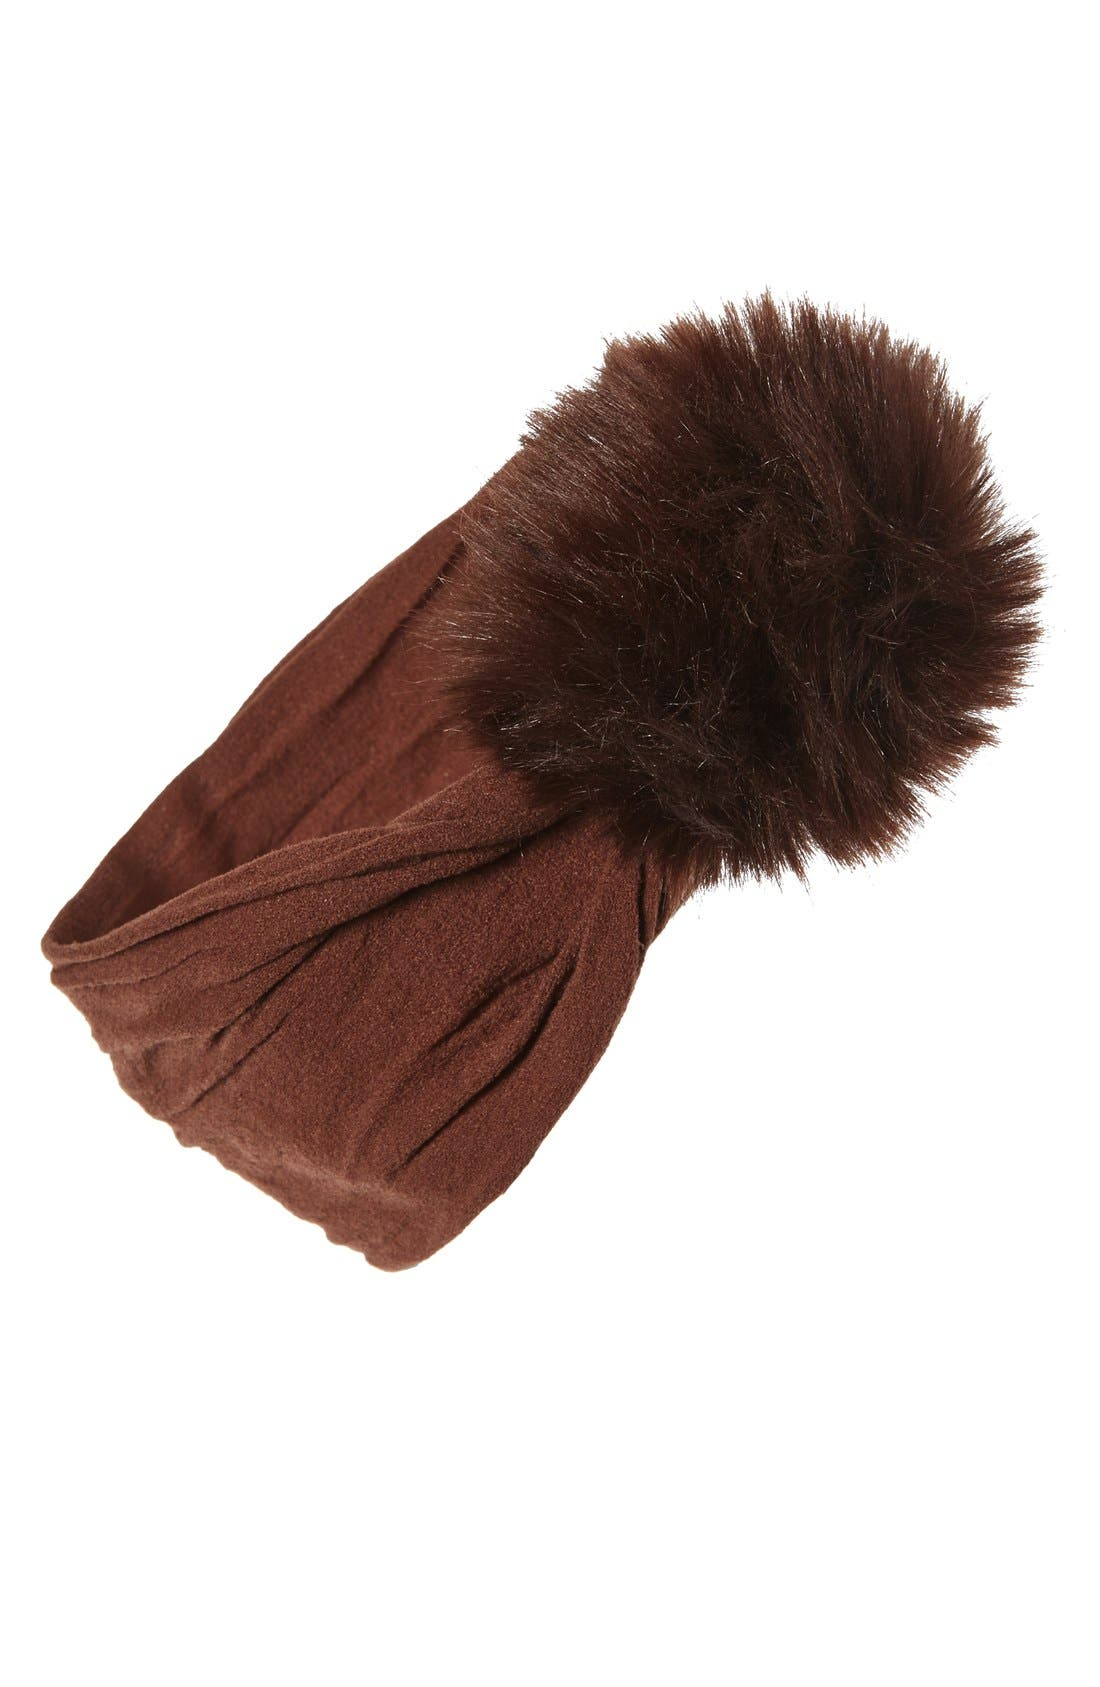 BABY BLING Faux Fur Pompom Headband